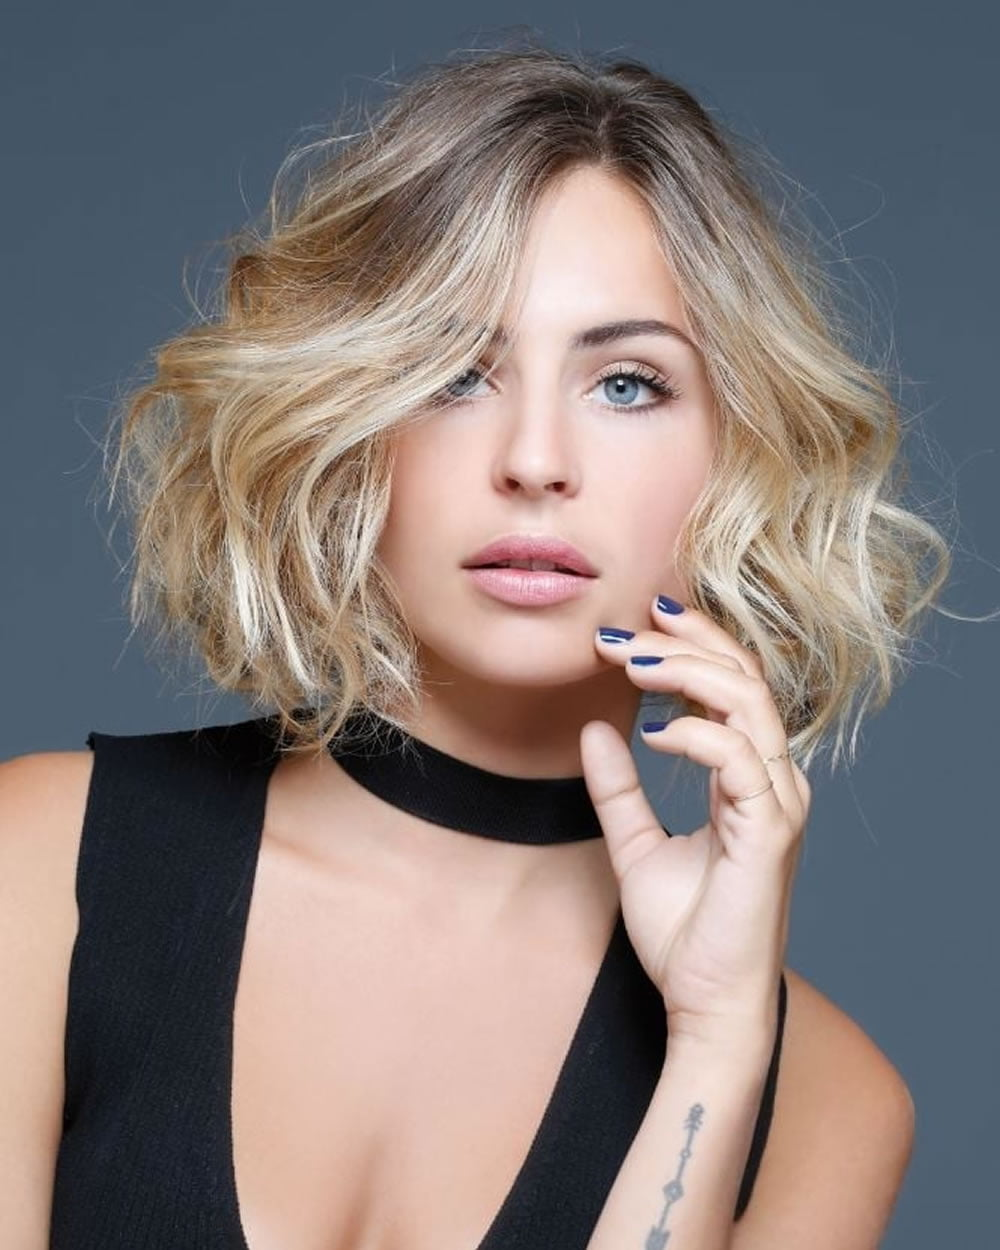 Center Parted Short Bob Hair Cut for Women with Round Faces